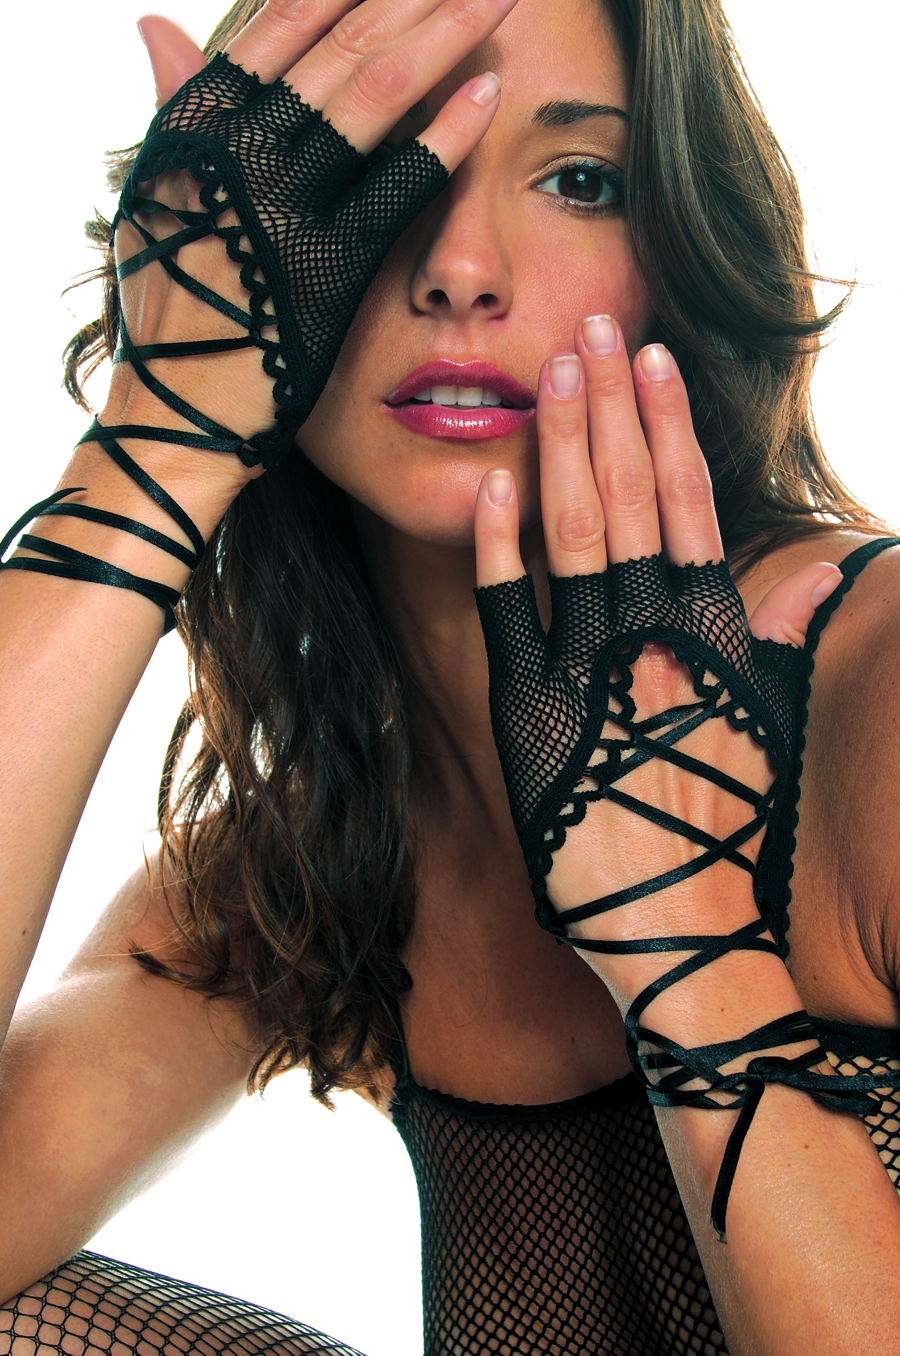 Black Wrist Length Lace Up Gloves Fishnet Fingerless 0413 Edmonton